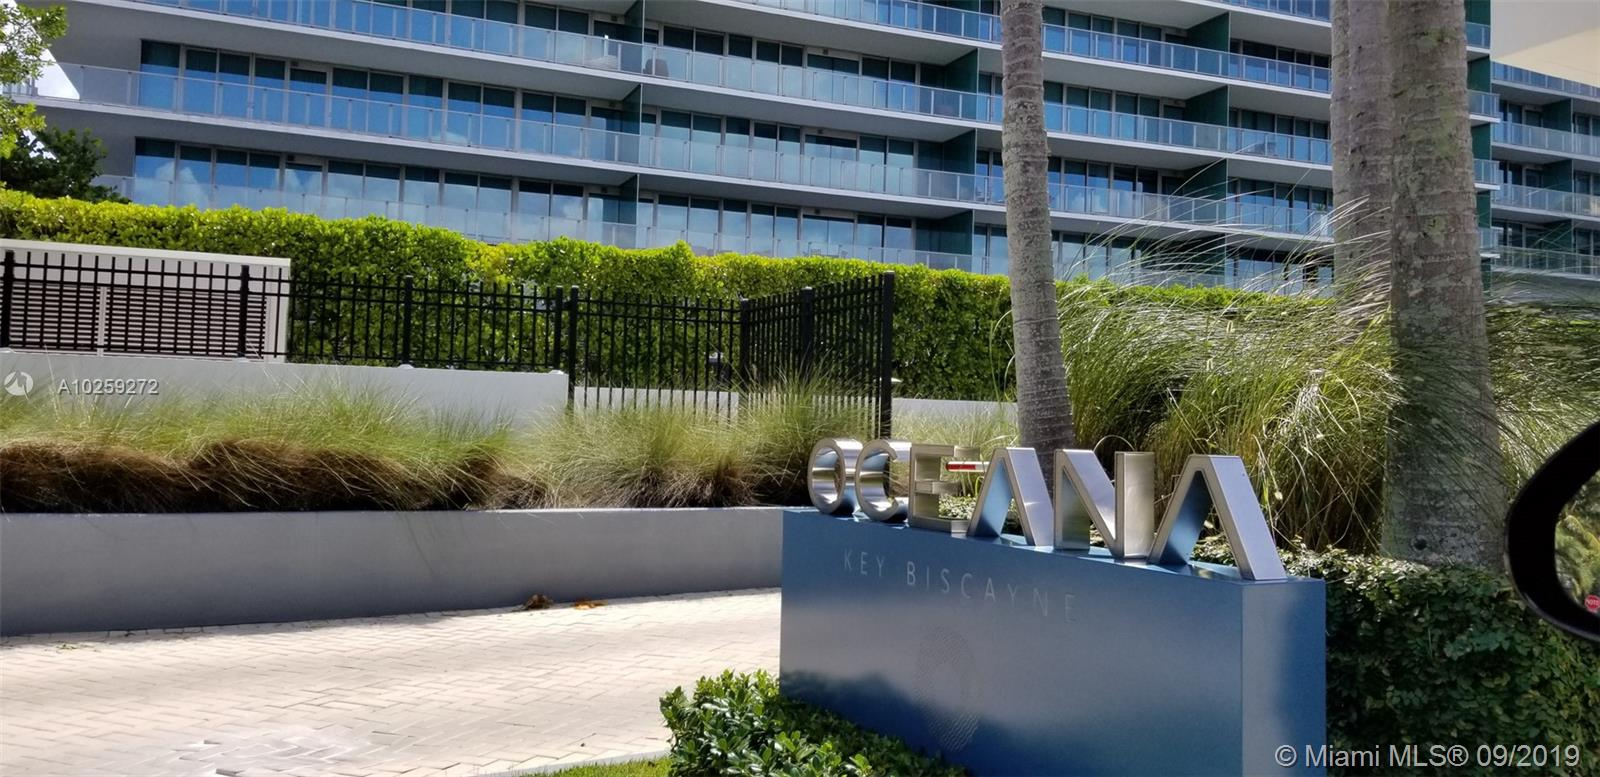 Best North Corner Unit In S. Fl'S Most Prestigious Building, Oceana Key Biscayne Has Great Open Views To Atl. Ocean, Mia. Bch, Fisher Isl., Key Biscayne. This Wonderful Property W/ 4, 080 Sqft Has 4 Beds, A Service Room, 7 Baths, Large Laundry Room And A Huge Wrap Around Balcony With 2, 070 Sqf. 4 Parking Spaces. White Quartz Counter Tops, Master Chef Double Oven, Whole Bean Coffee System, Wine Cooler. Unique Residence Lobby, Infinity Pool, Fitness Center And Top Of The Spa. Tennis, Volleyball & More.Seller Motivated Make An Offer !!!